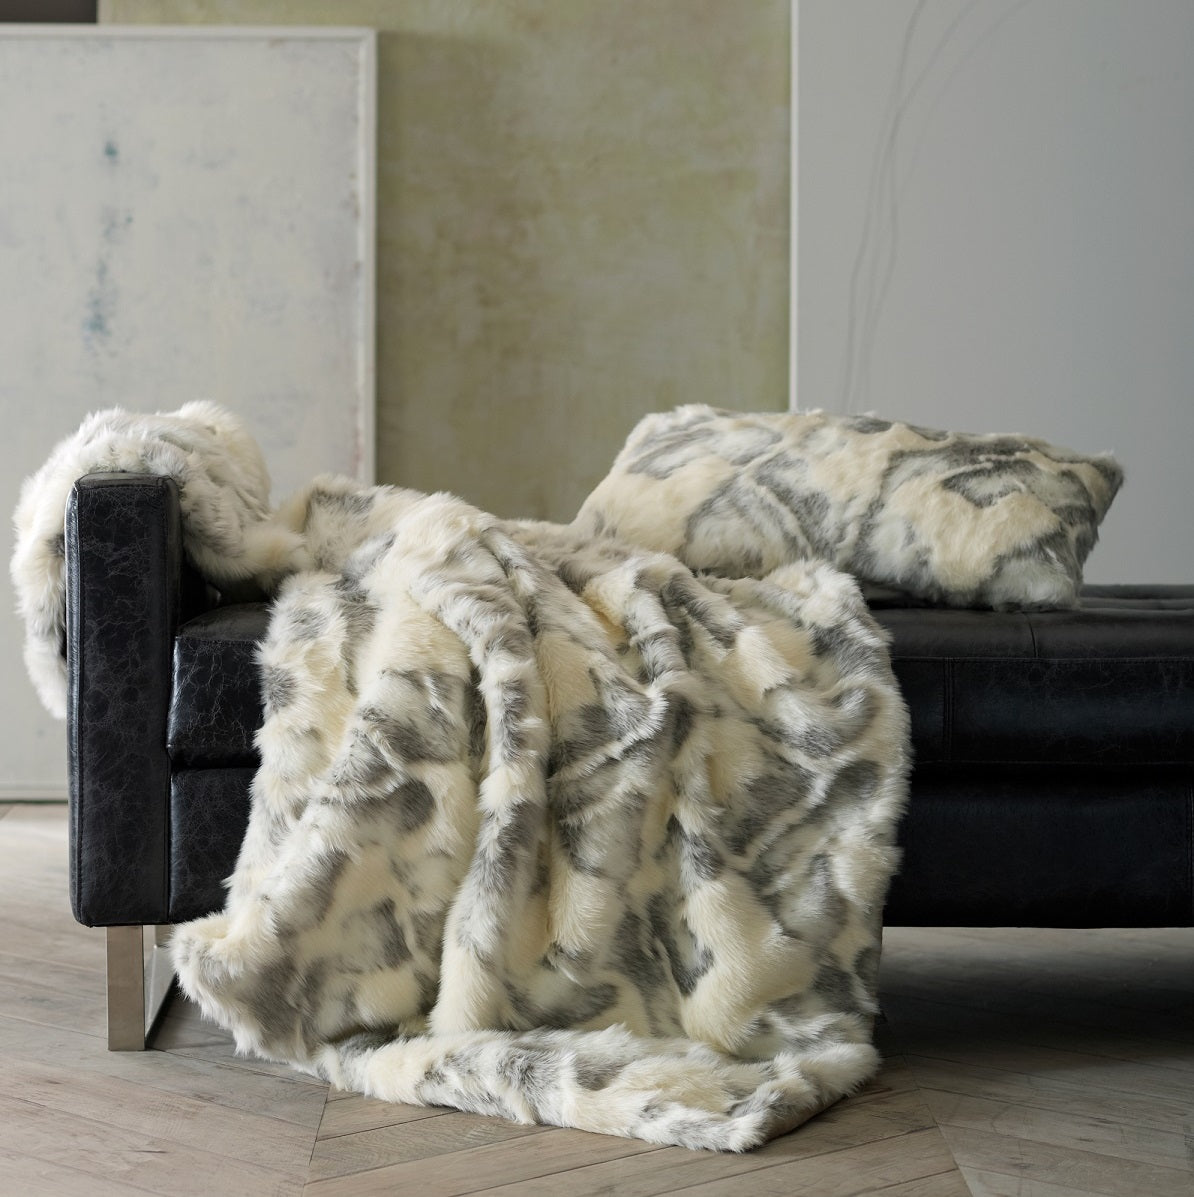 White and gray faux fur throw and pillow over black leather seating